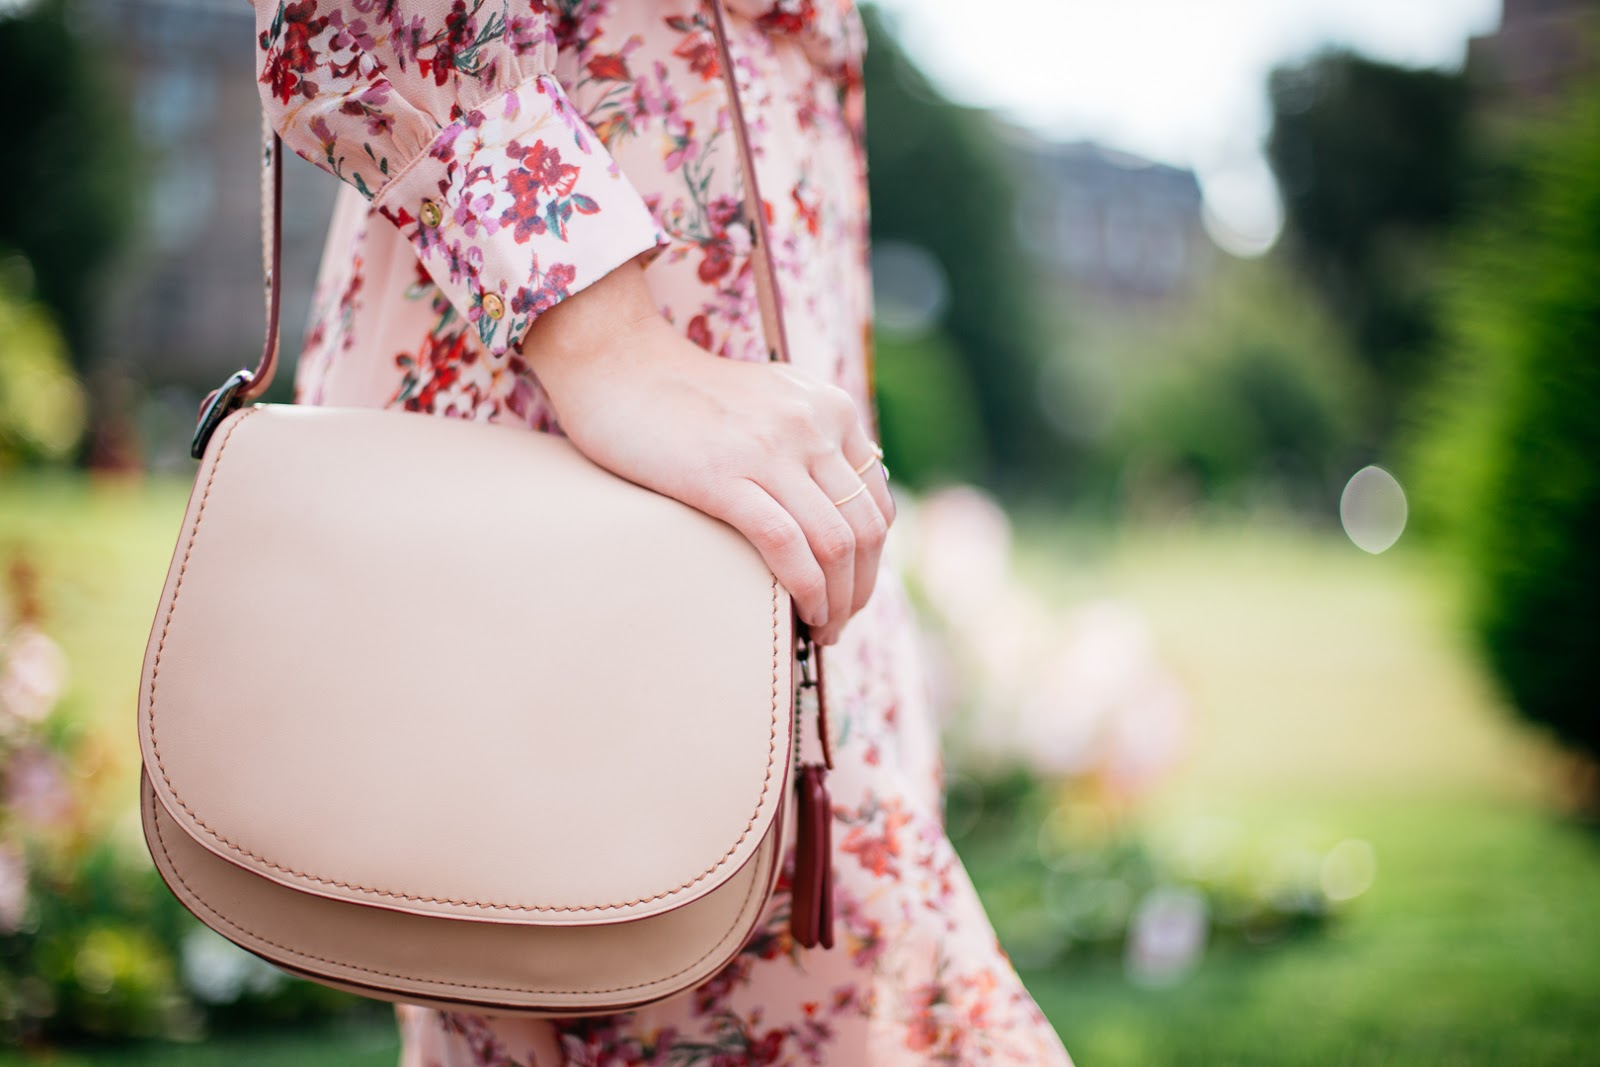 How pretty is this neutral saddle bag from COACH? I love the vintage style and it's the perfect size for day and night.